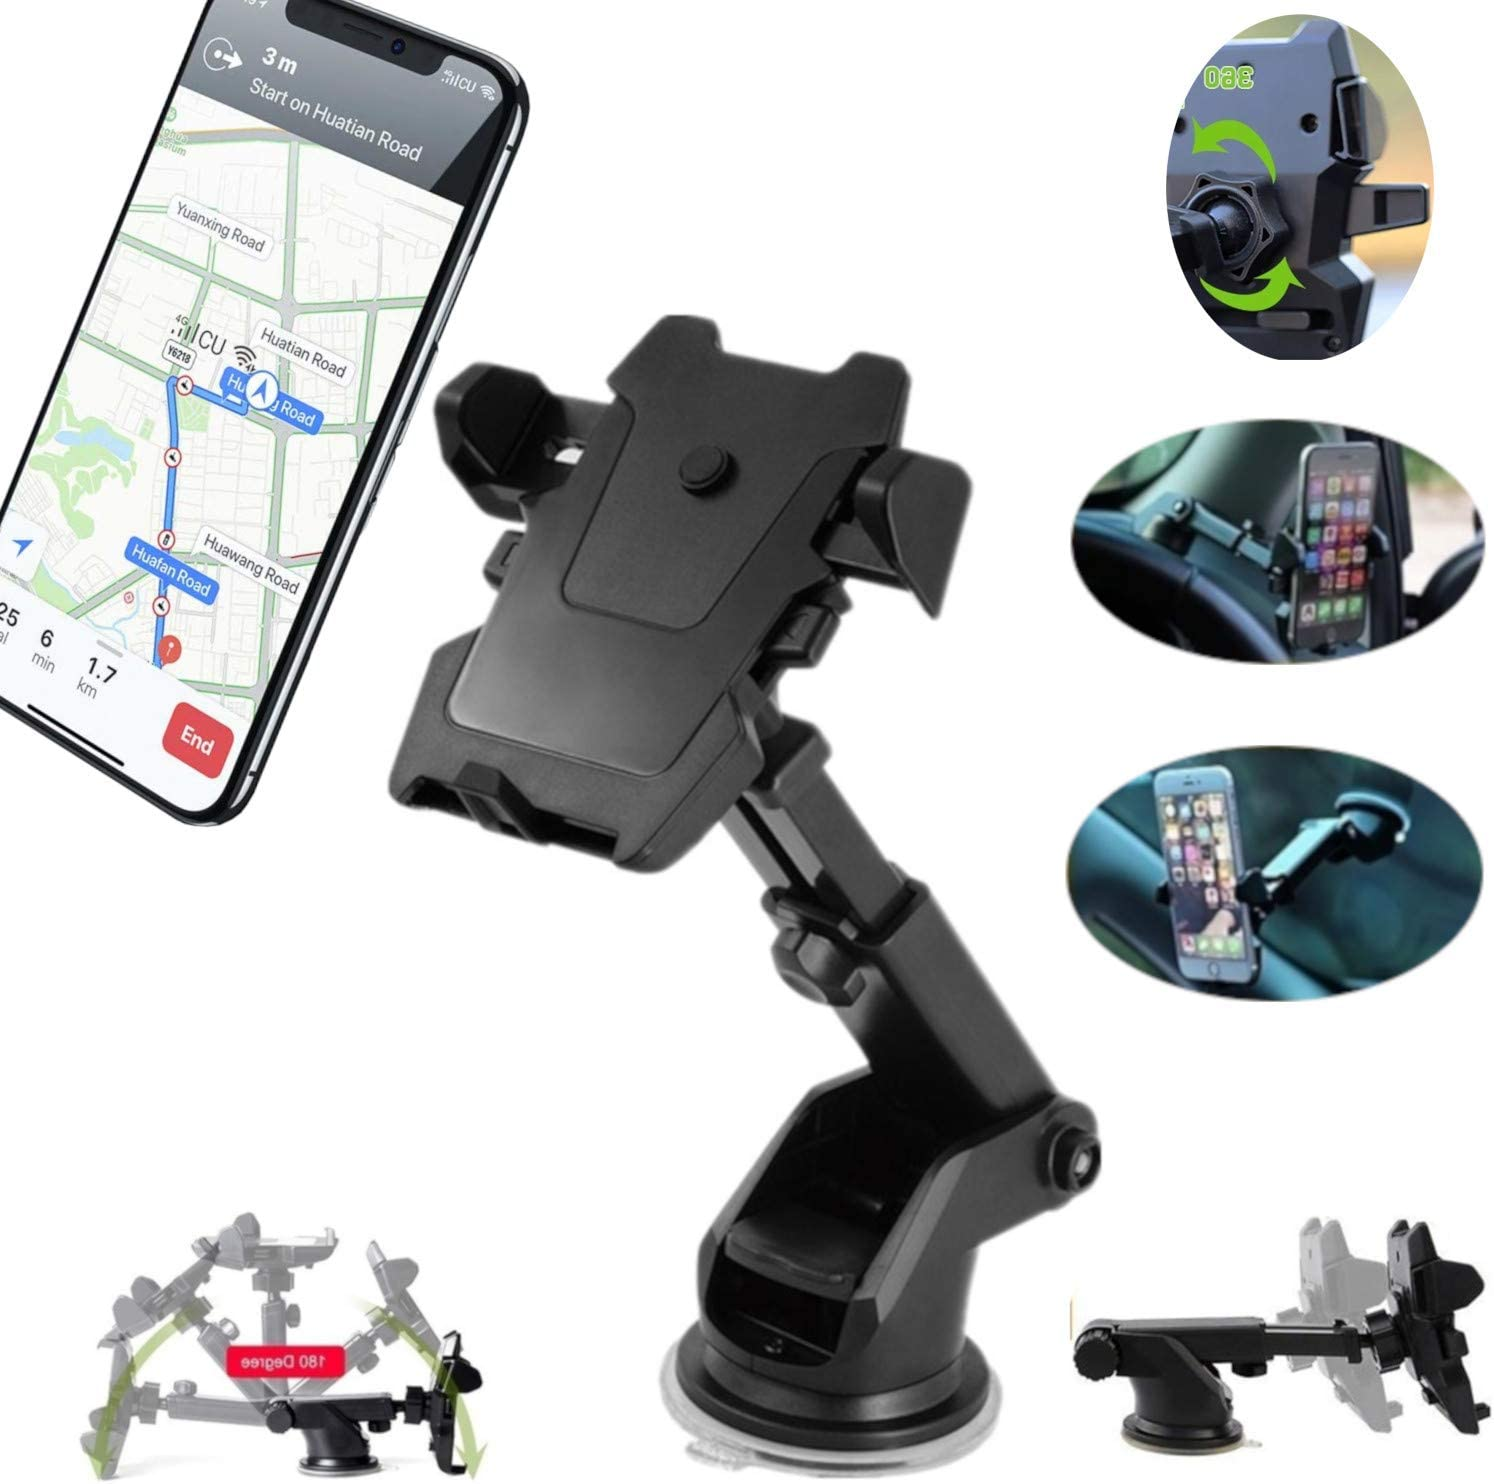 Phone Holder ONE Touch Phone Mount 360 Degree Universal Phone Holder Super Strong Suction CAR Dashboard Windshield Cell Phone Holder Compatible with Most Phone